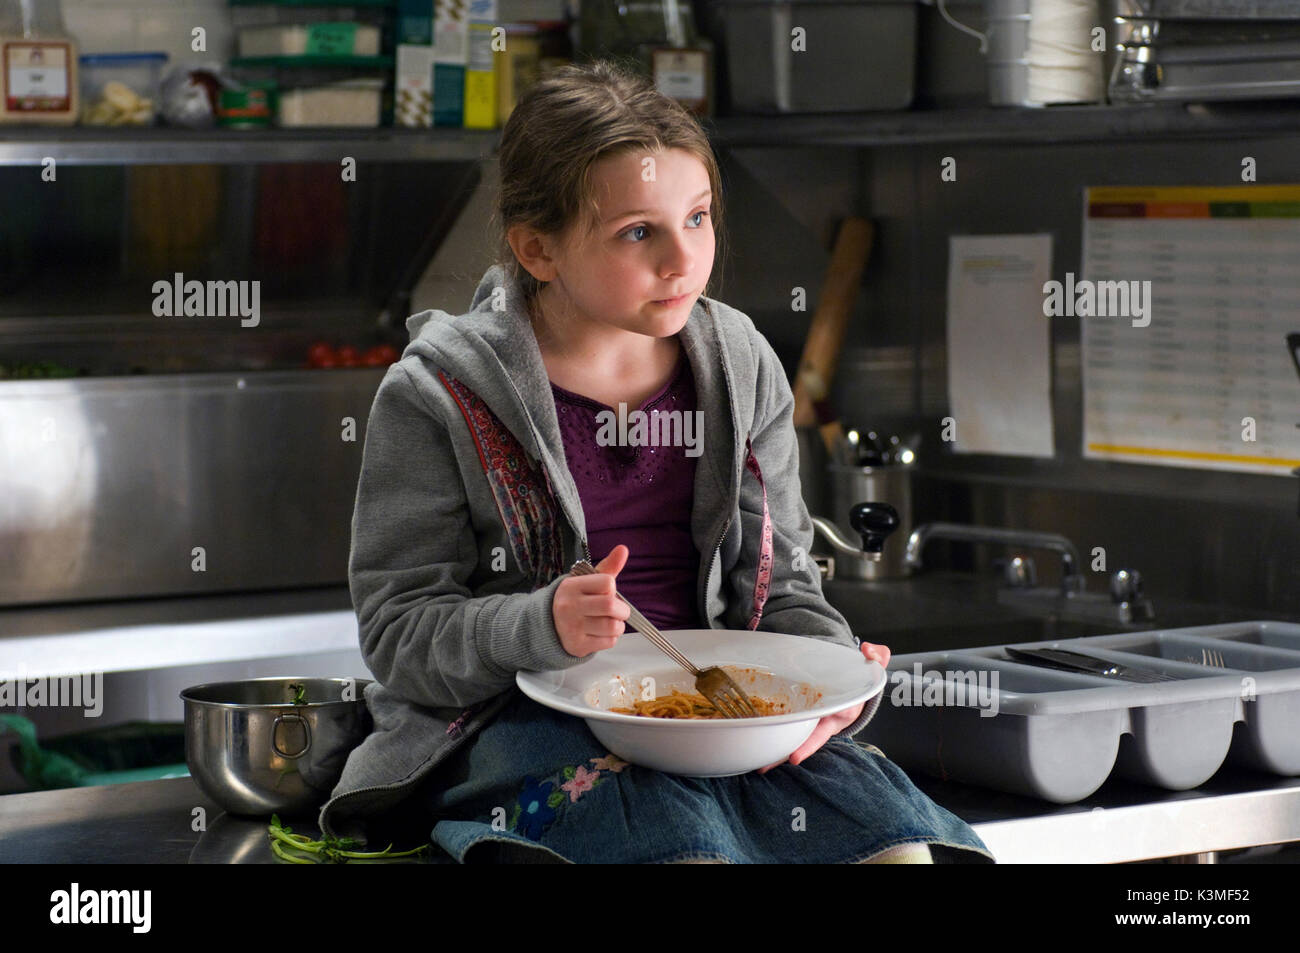 NO RESERVATIONS [US / AUS 2007] ABIGAIL BRESLIN     Date: 2007 - Stock Image